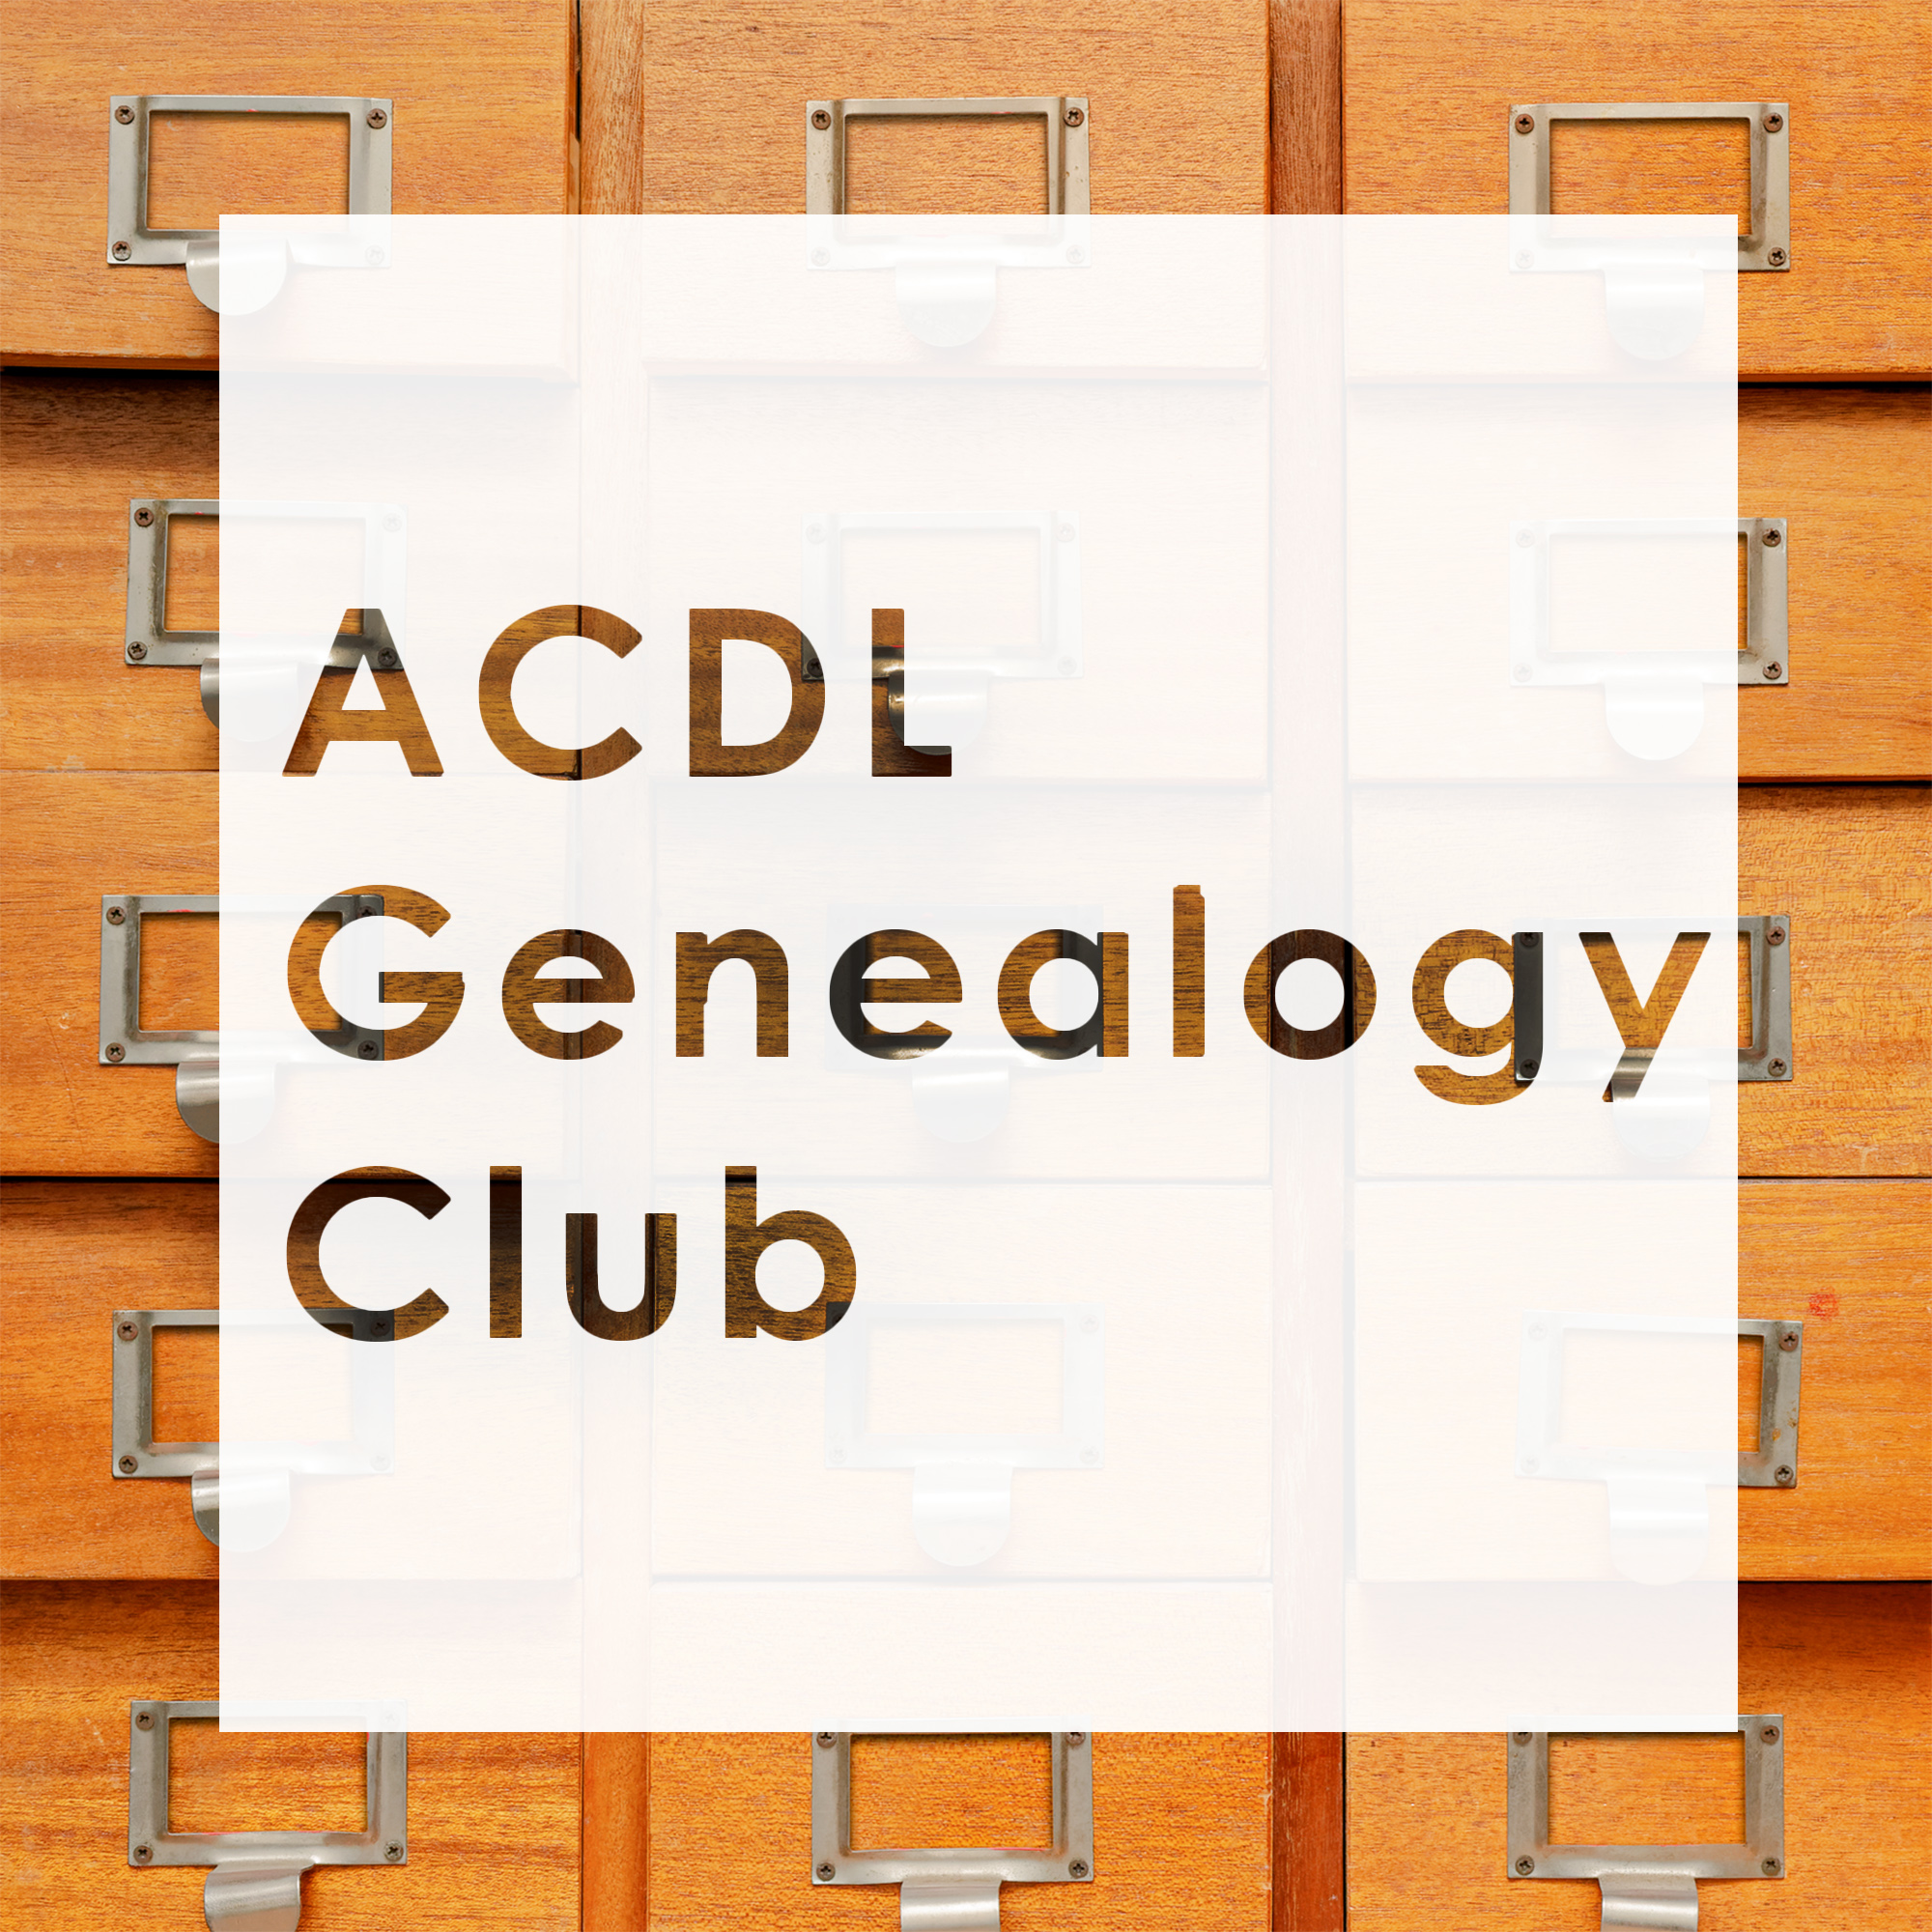 ACDL Genealogy Club